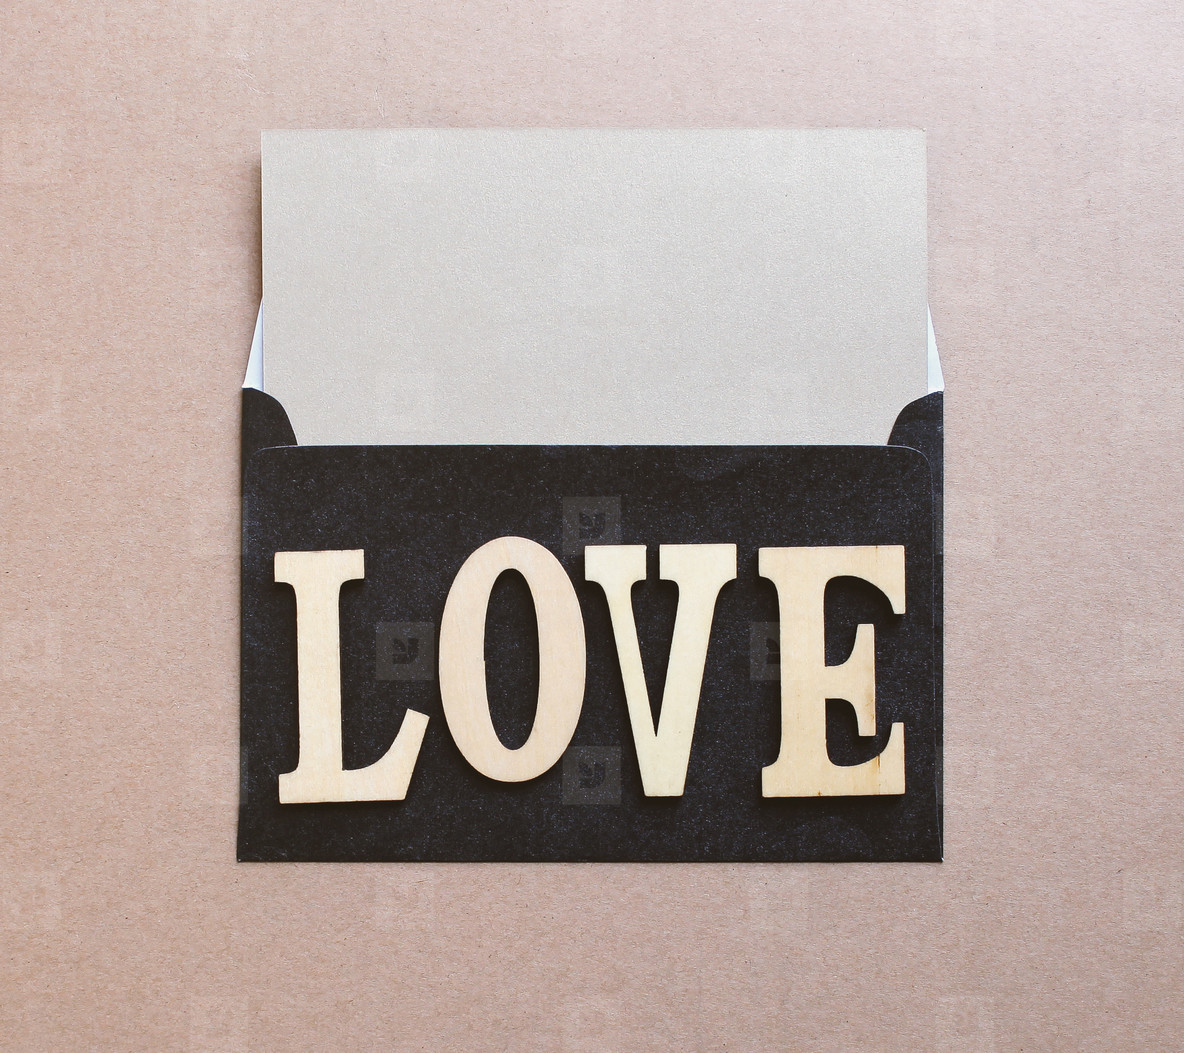 love word on letter